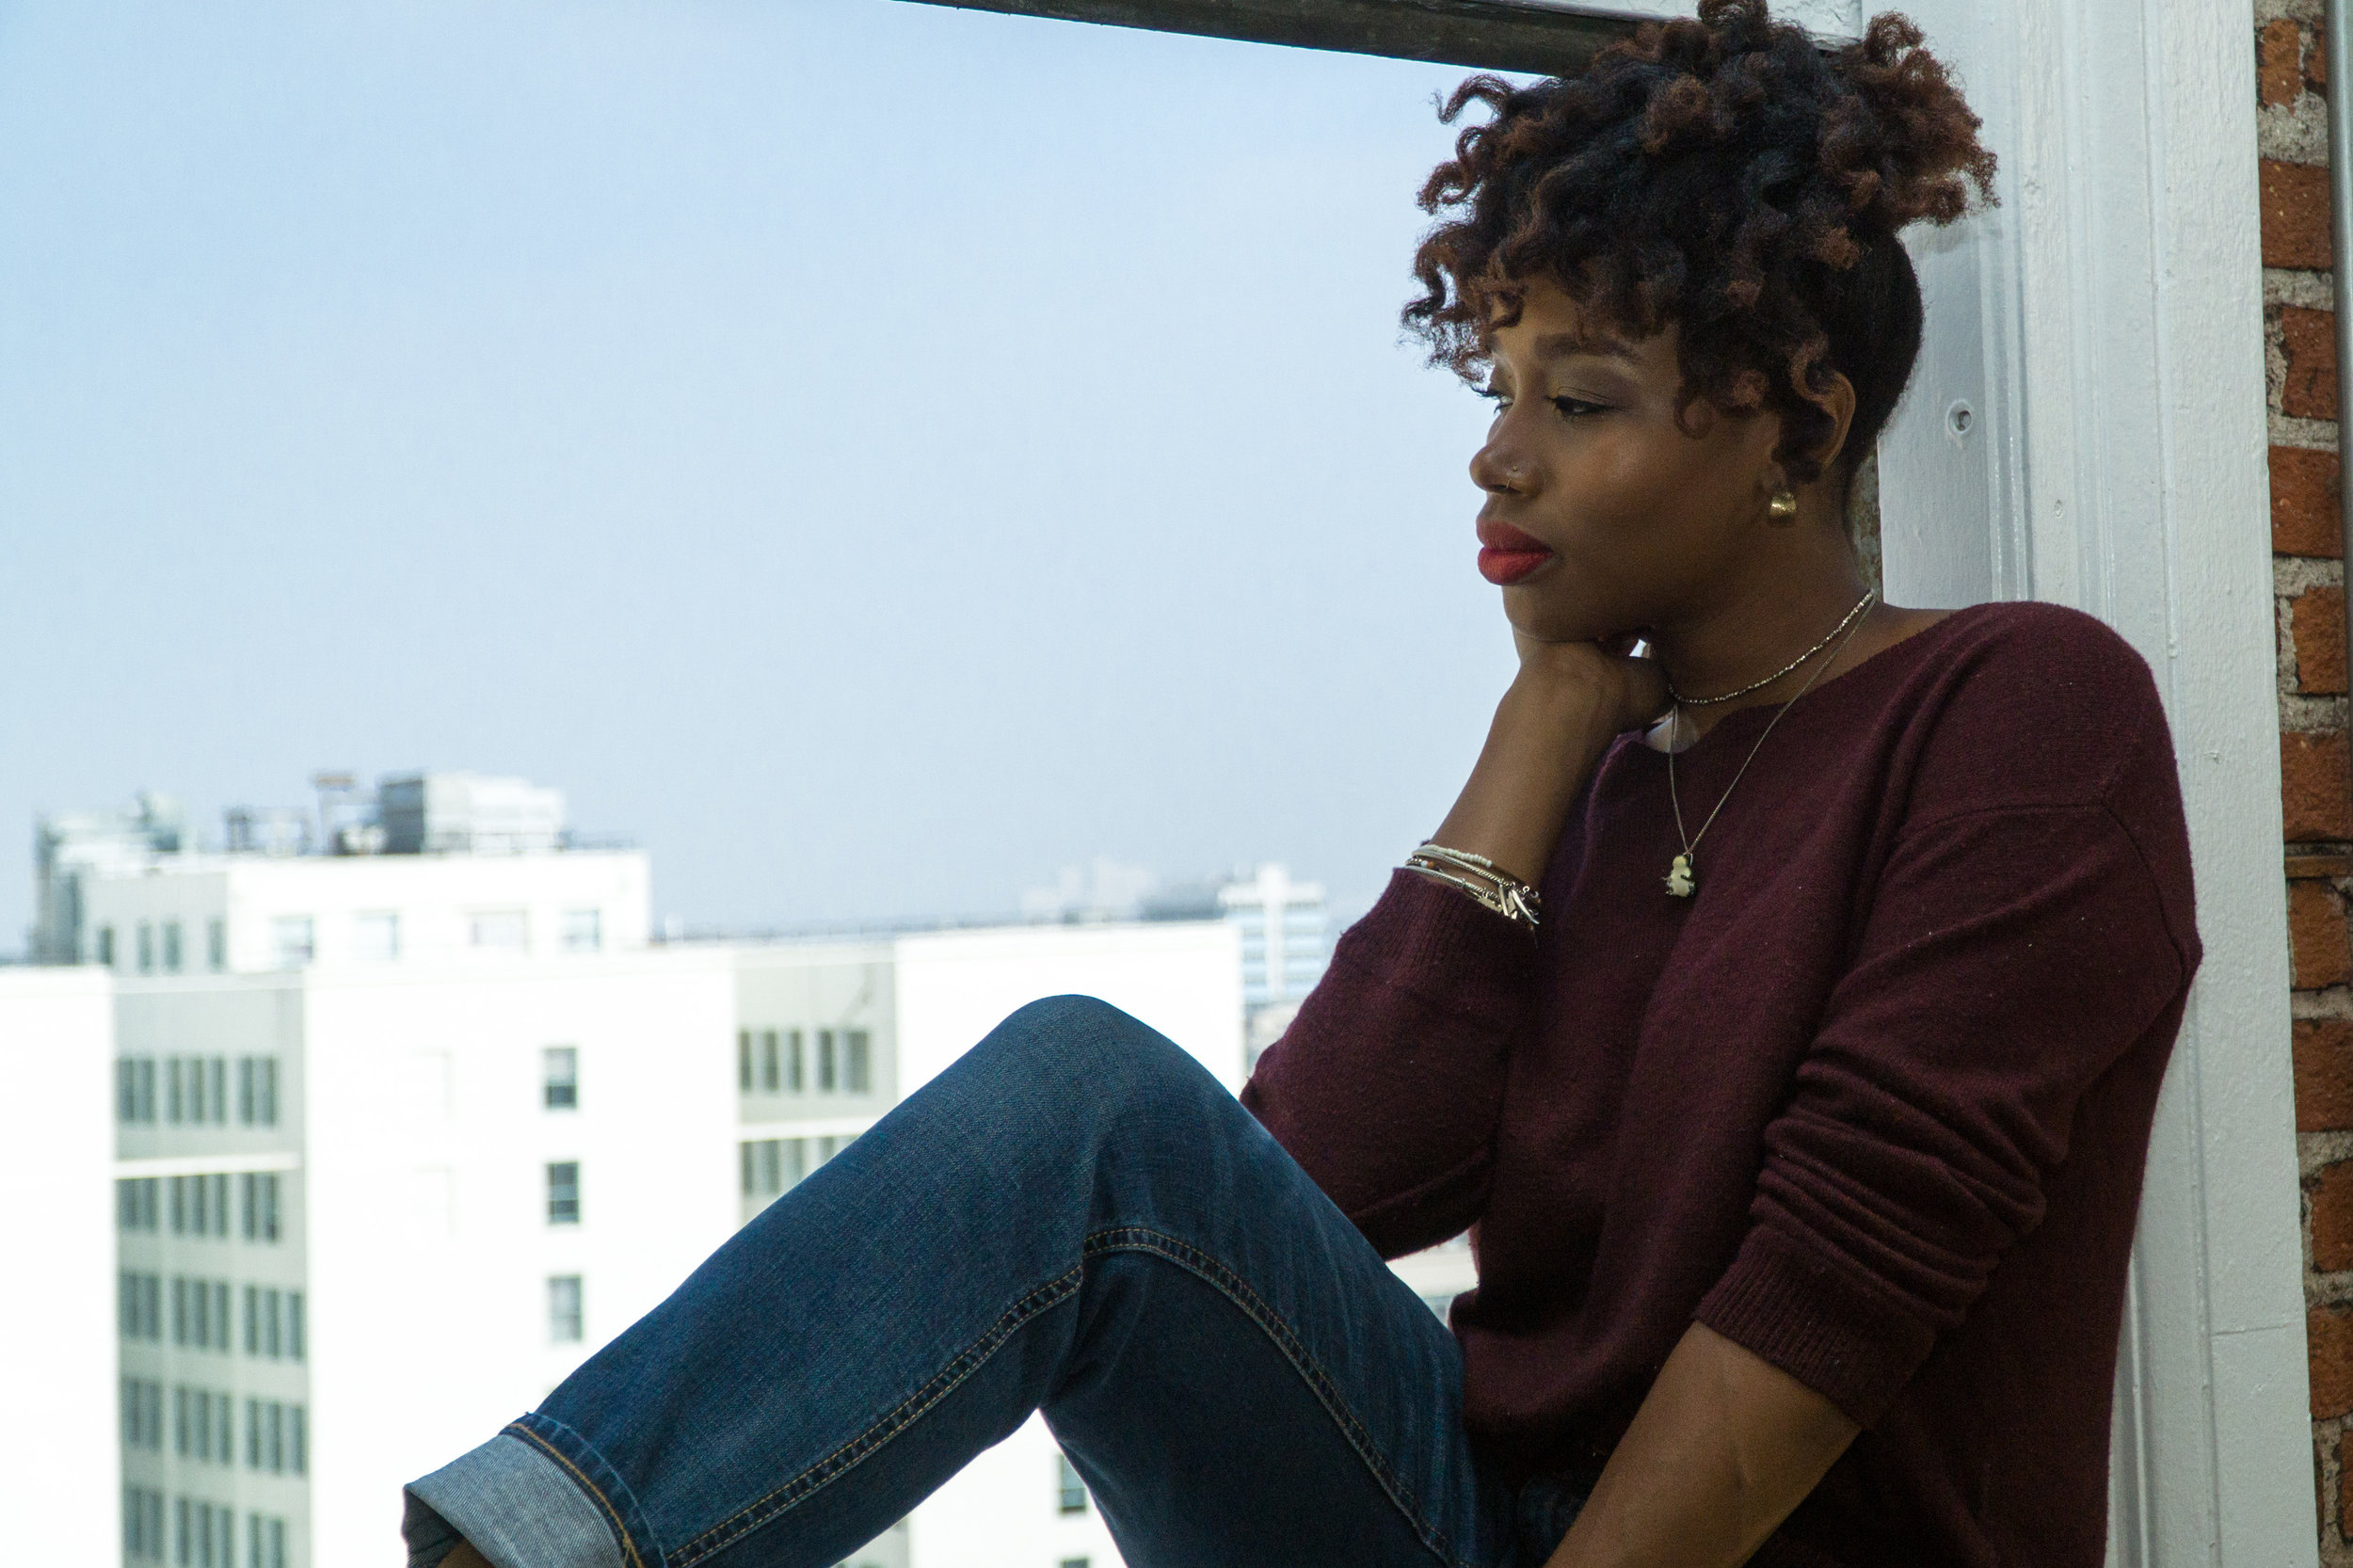 downtown-los-angeles-lifestyle-fashion-sitting-hm-the-kashonna-files.jpg